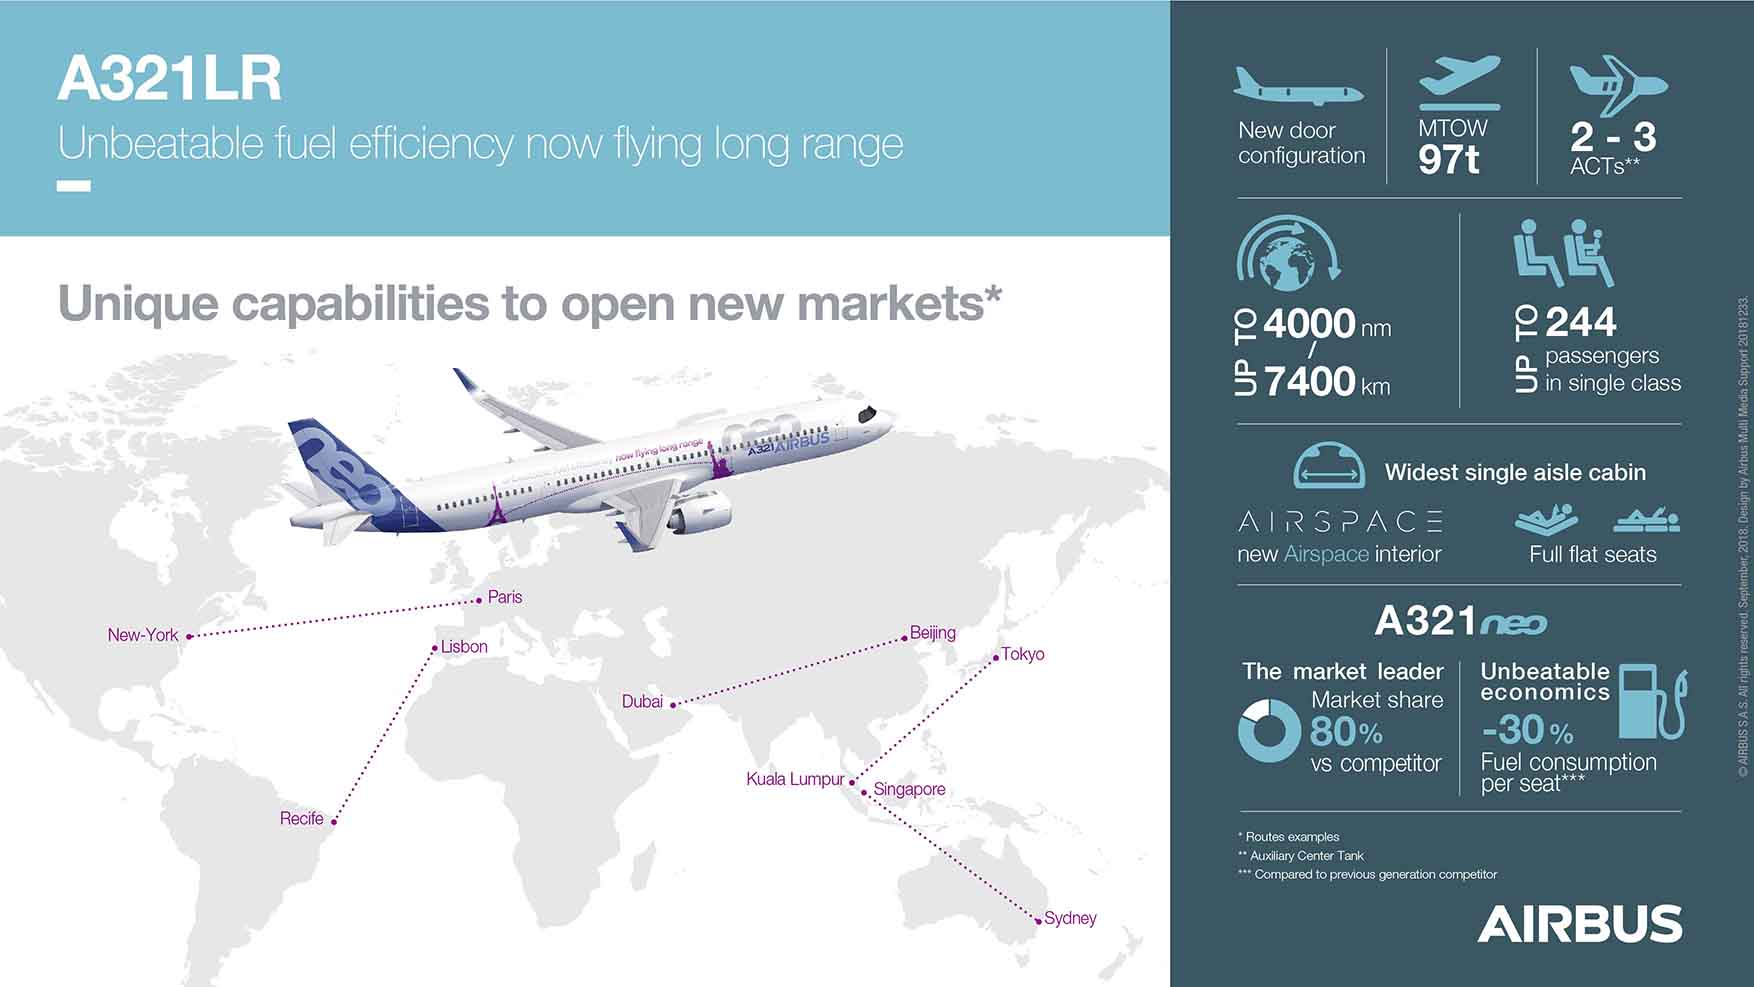 Easa And Faa Certify Long Range Capability For Airbus